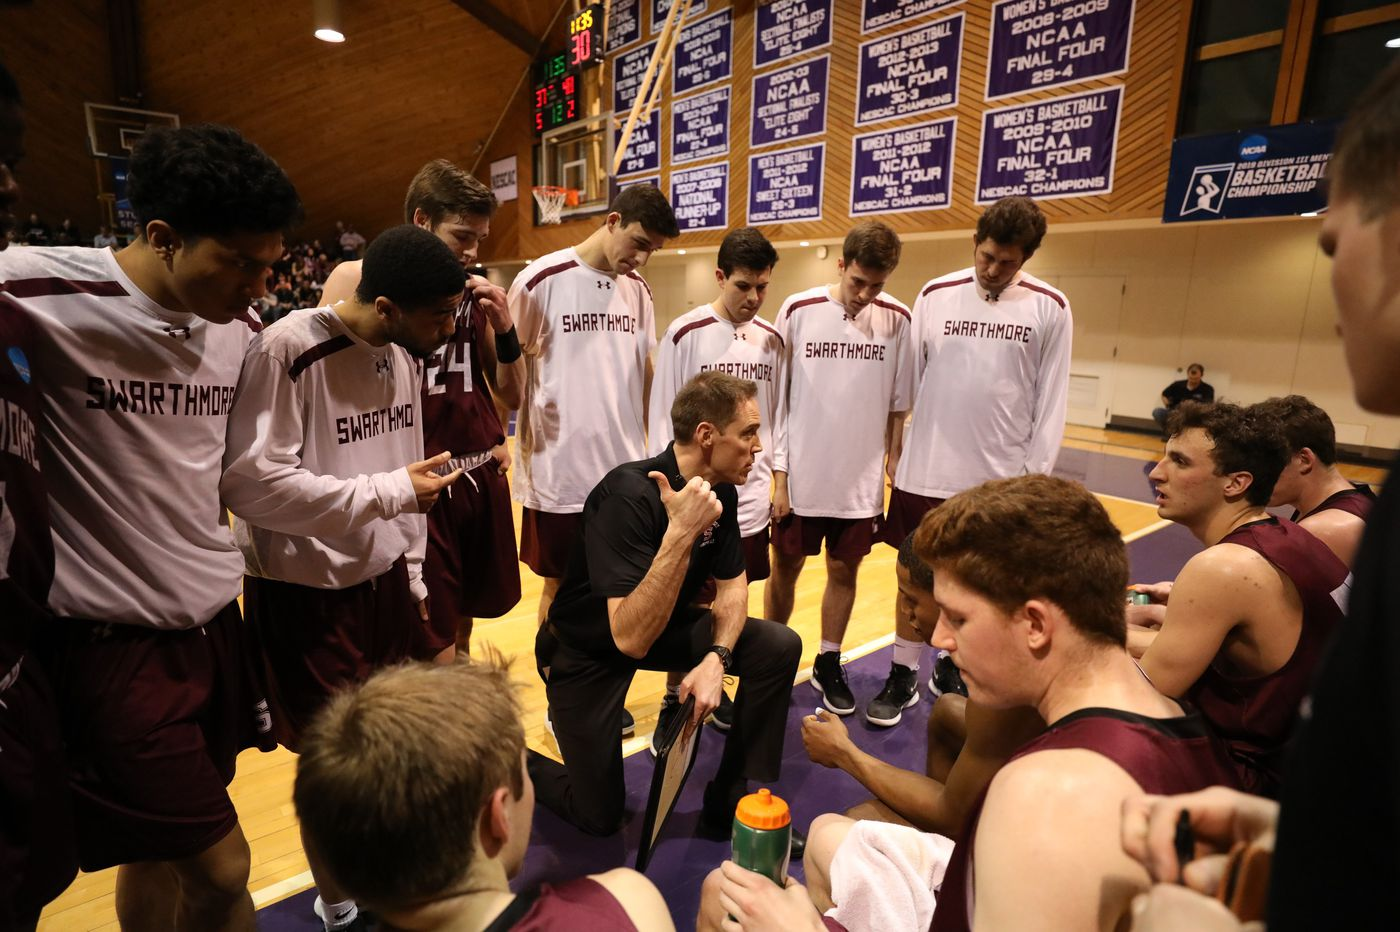 Swarthmore College basketball team has reached the Division III Final Four. How? Precisely. | Mike Jensen